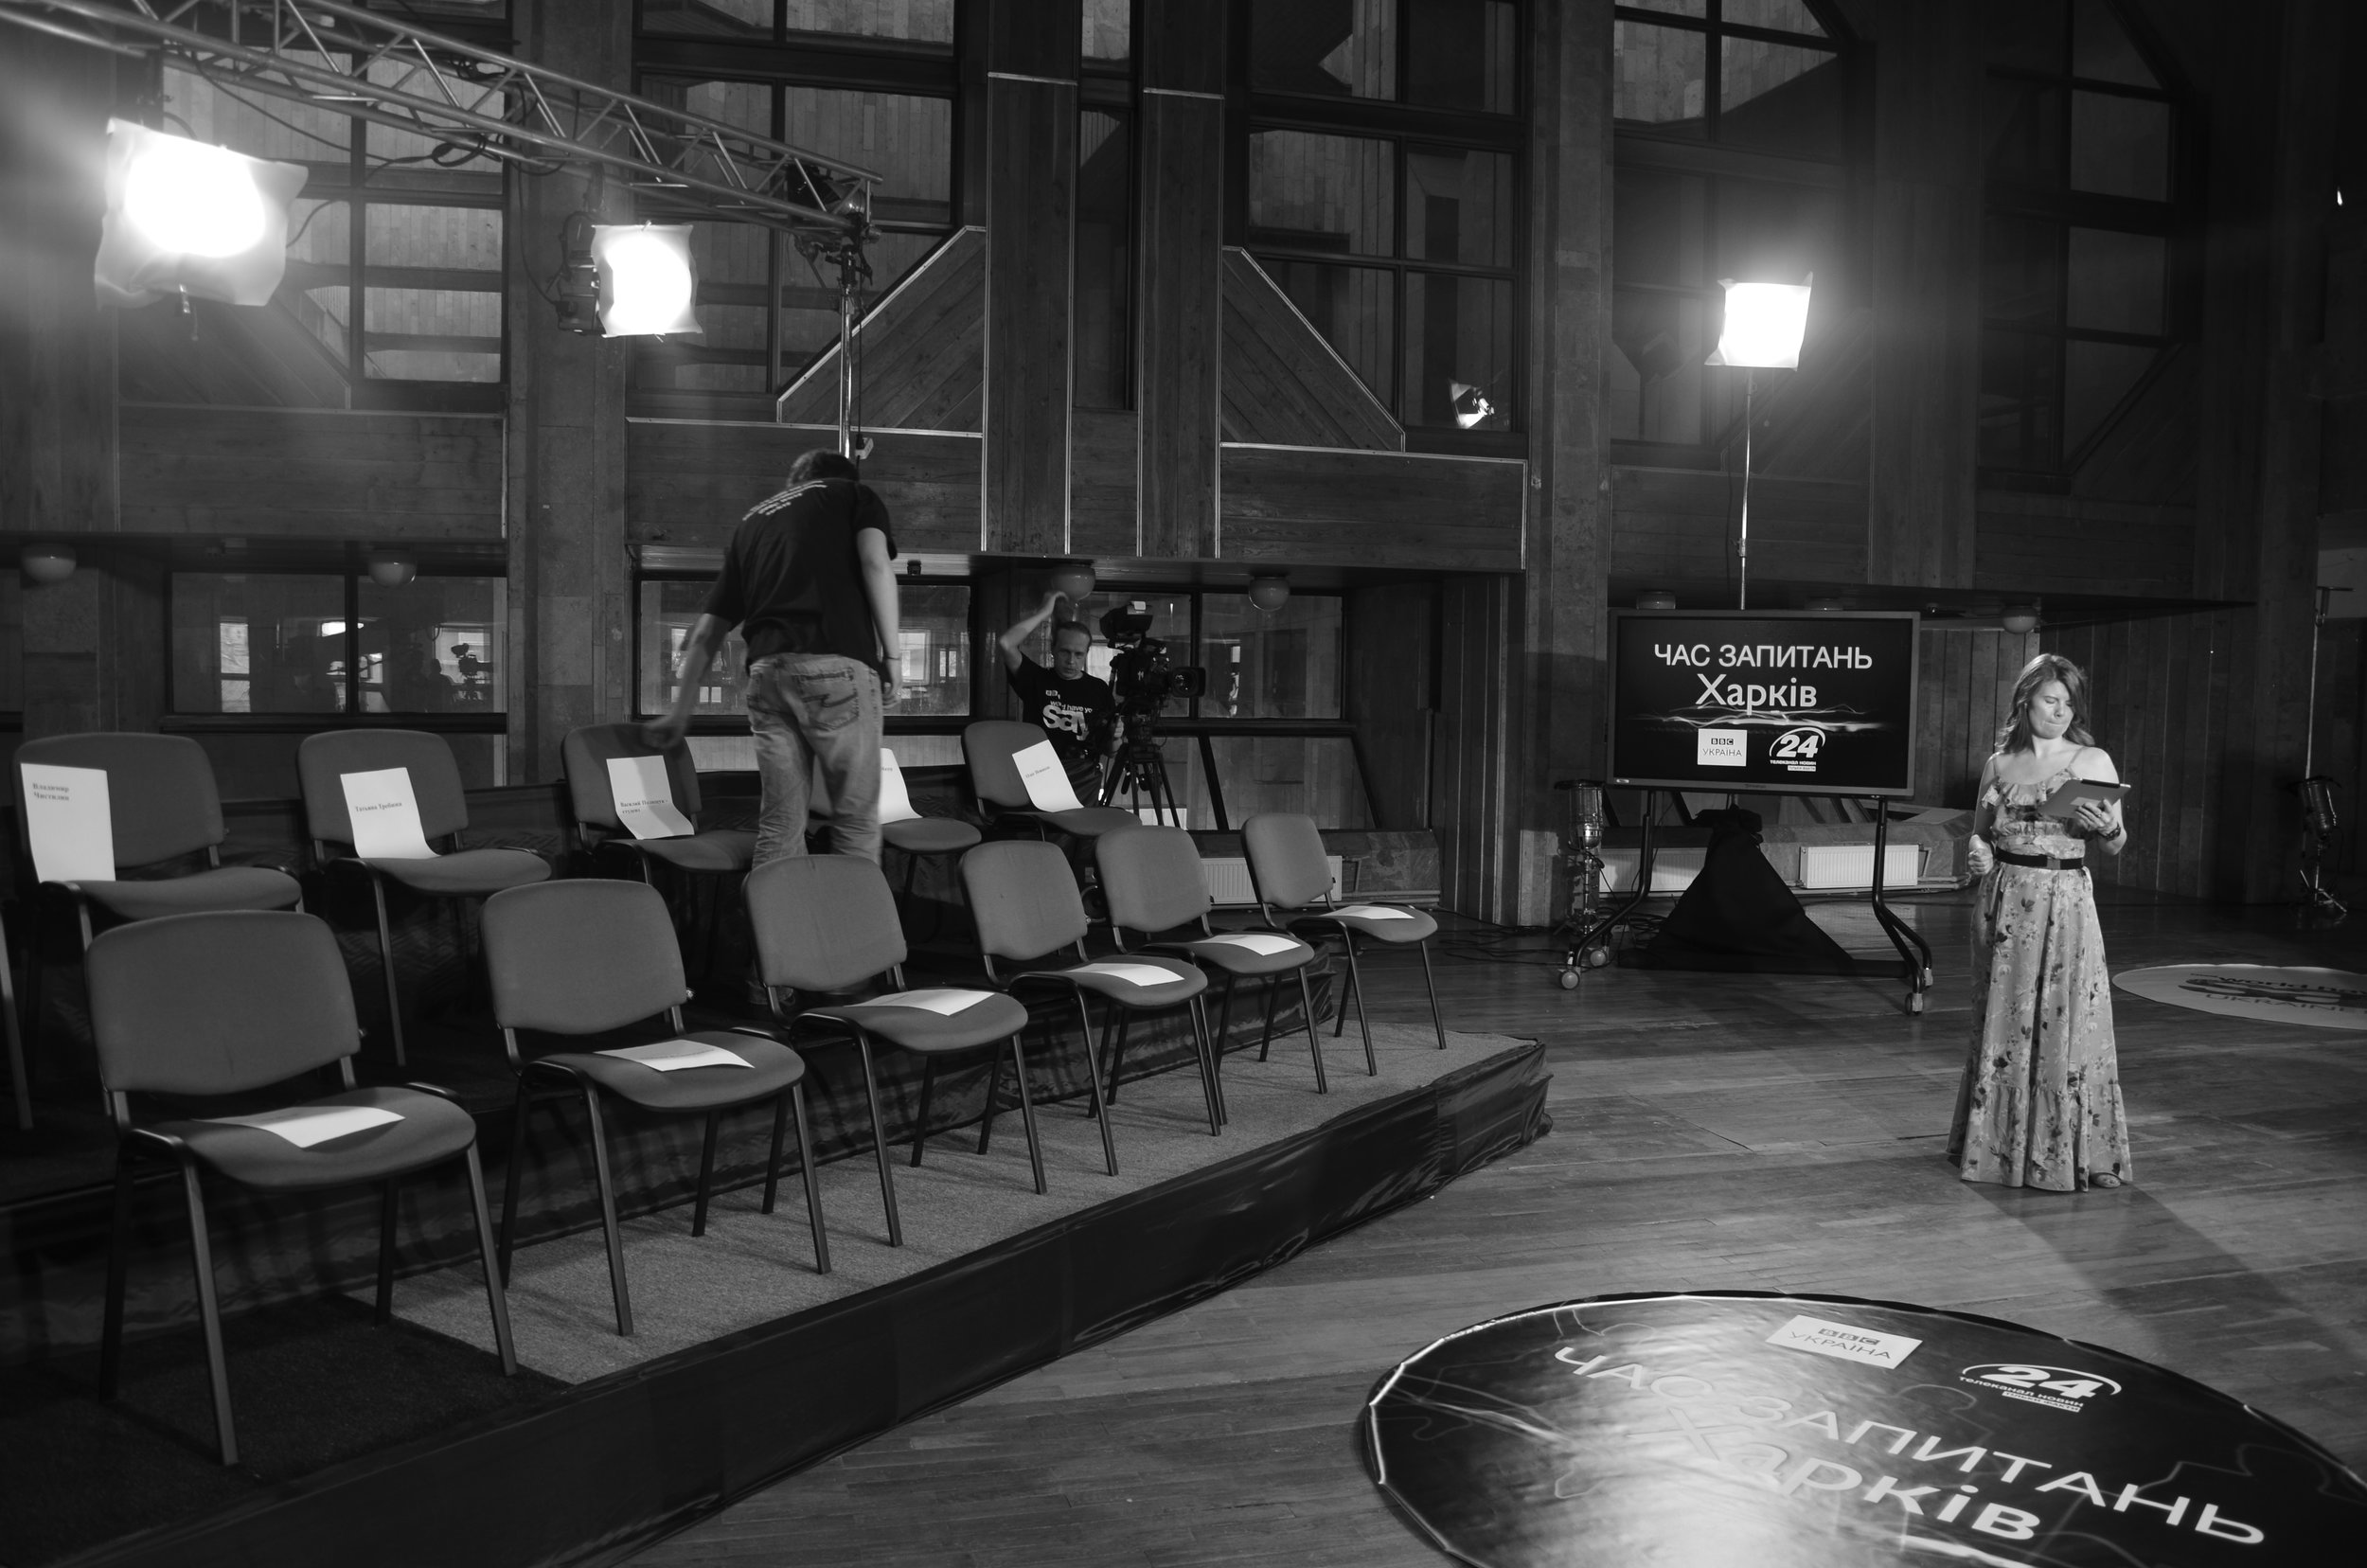 Preparing for a live audience TV show in Kharkiv, eastern Ukraine, after the annexation of Crimea for BBC World News